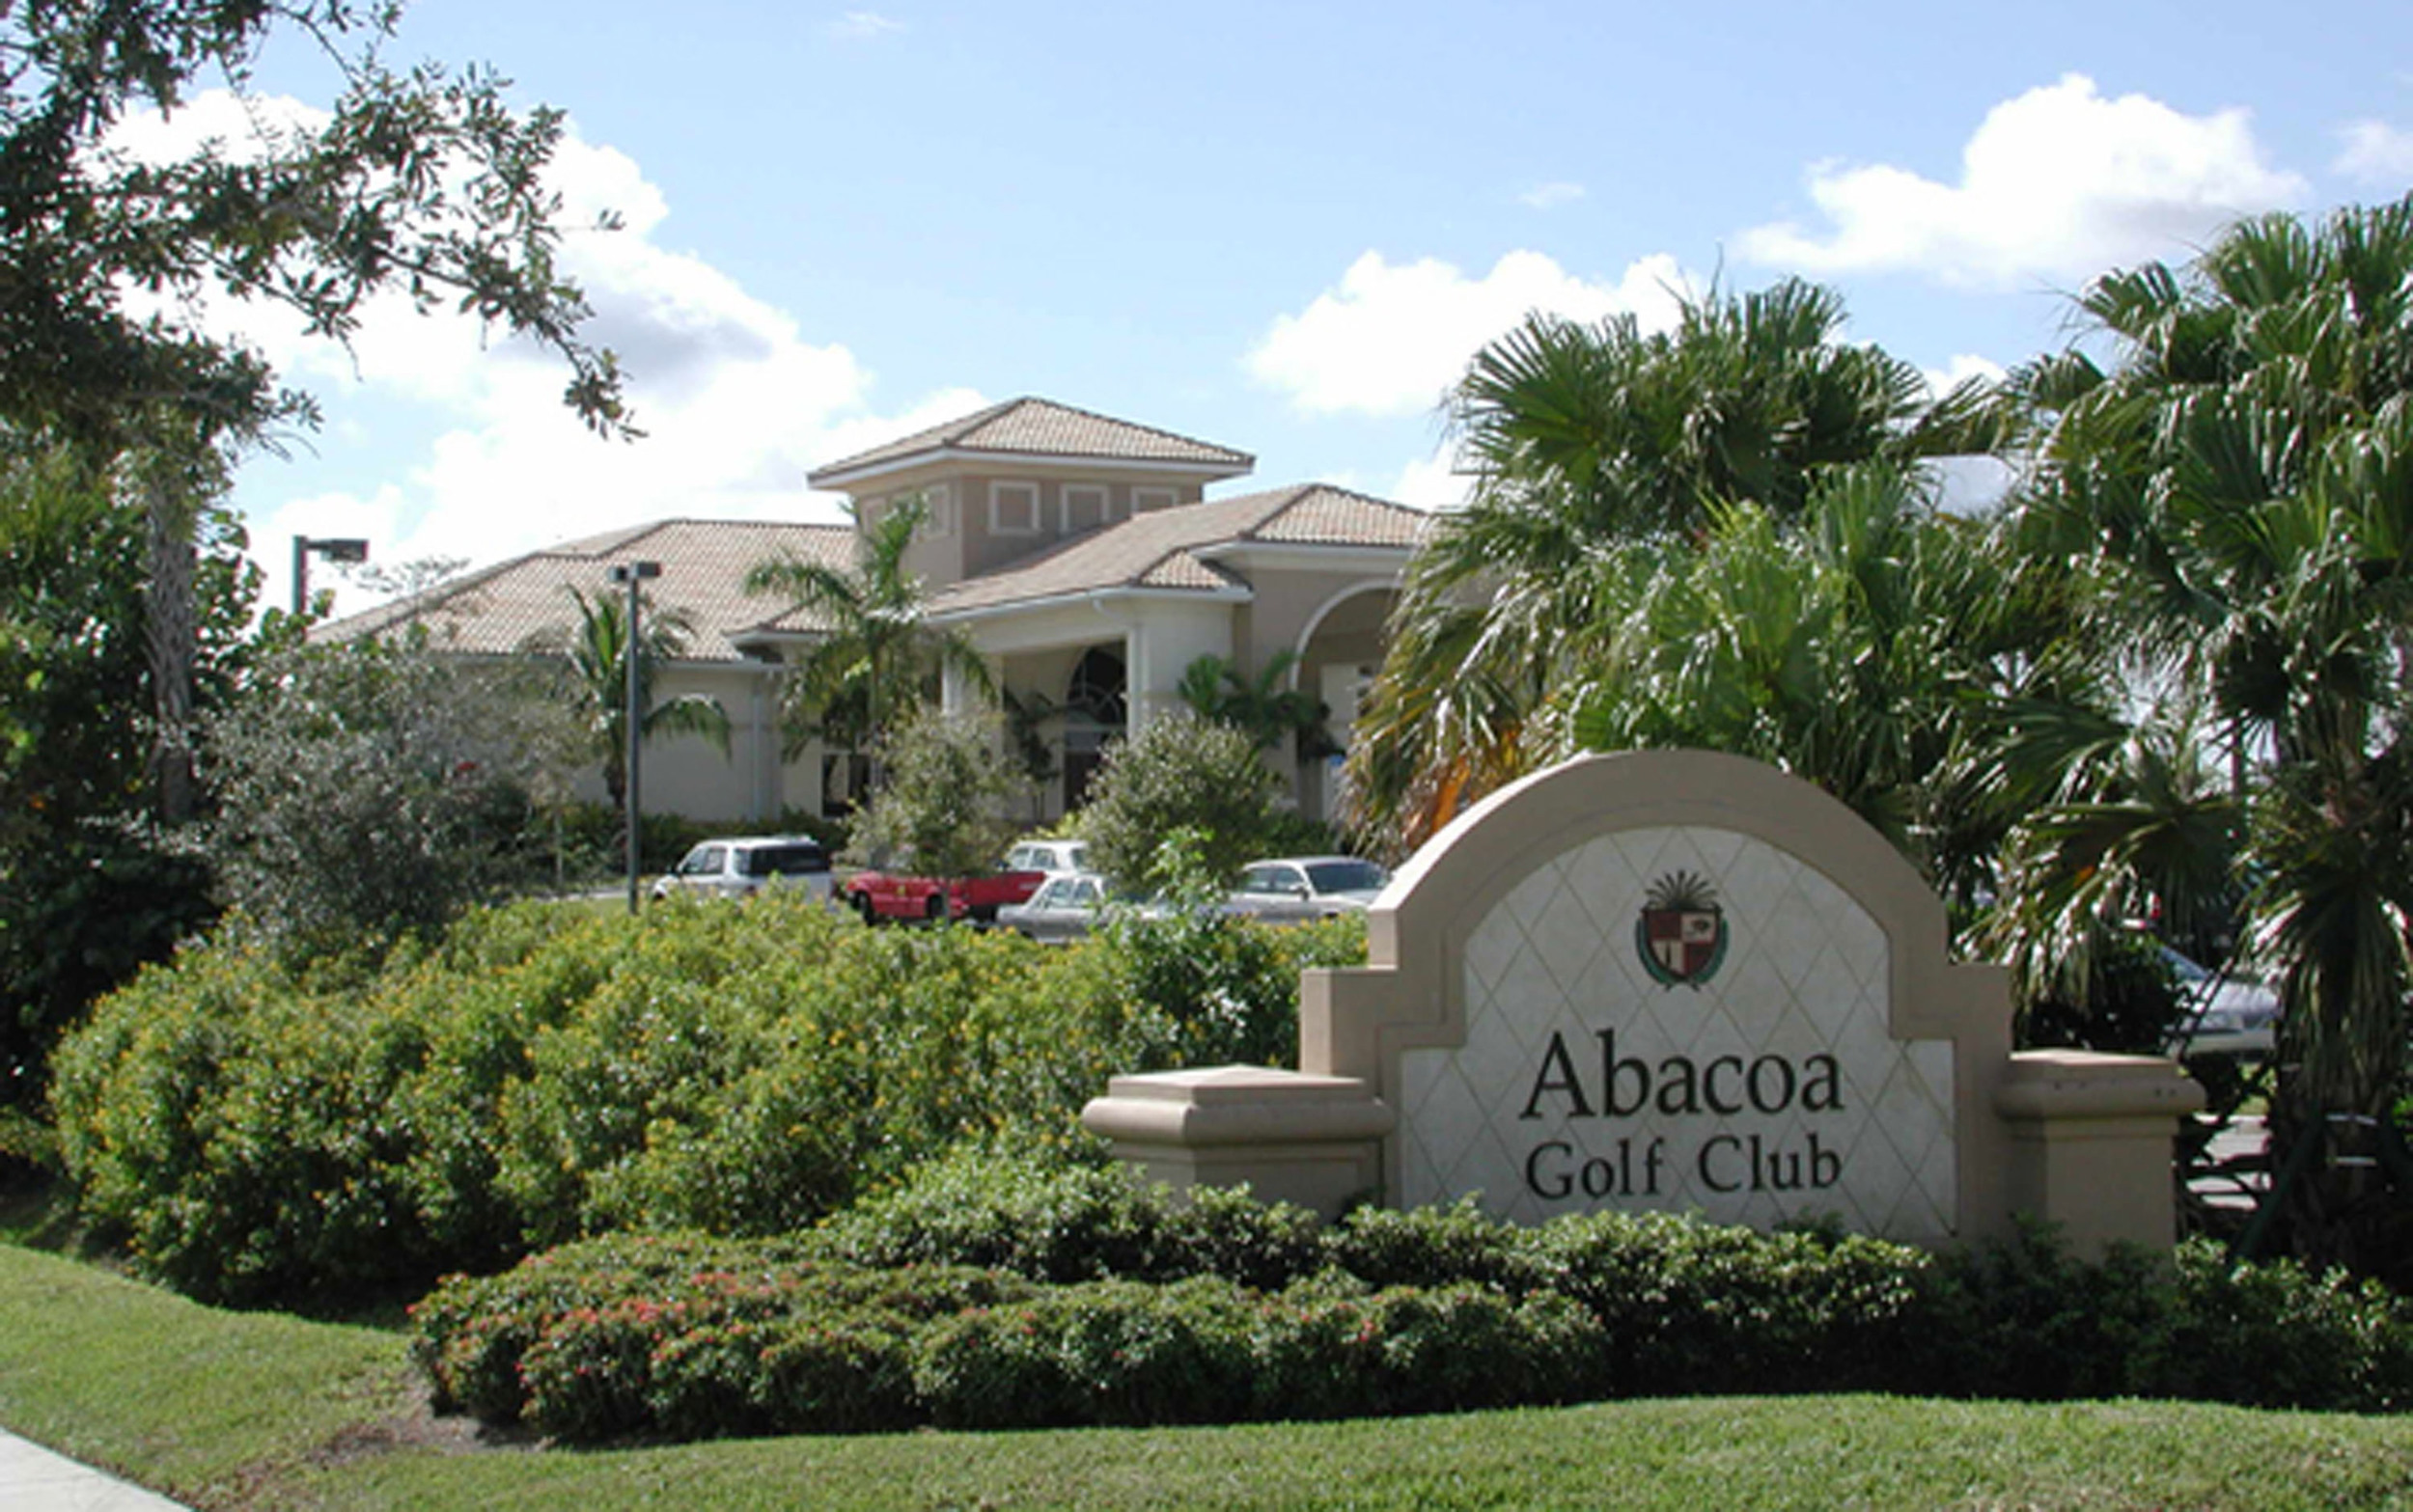 Abacoa Golf Clubhouse Jupiter Florida Entry Sign.jpg